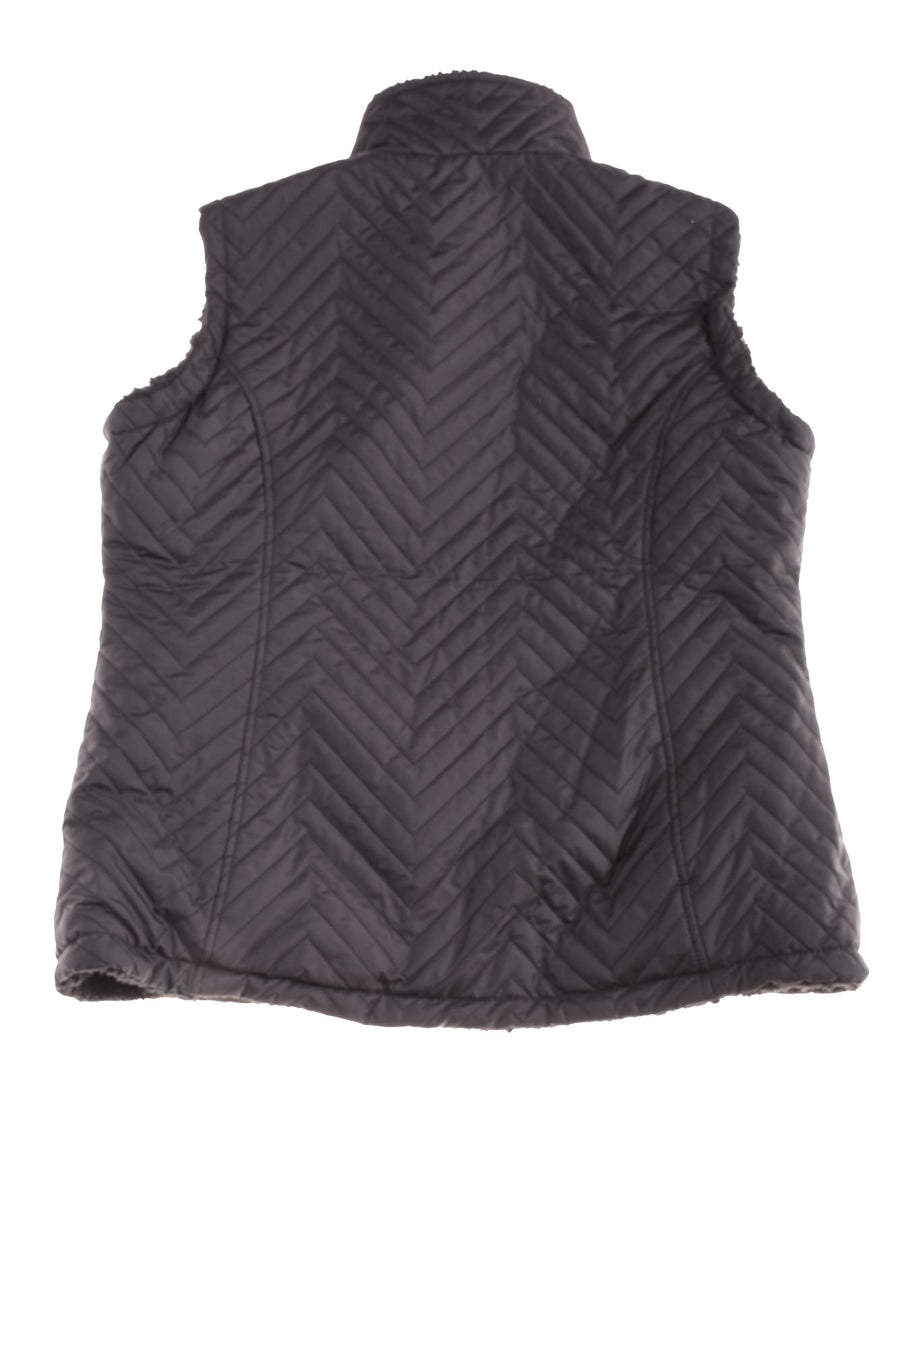 NEW Free Country Women's Vest Large Black